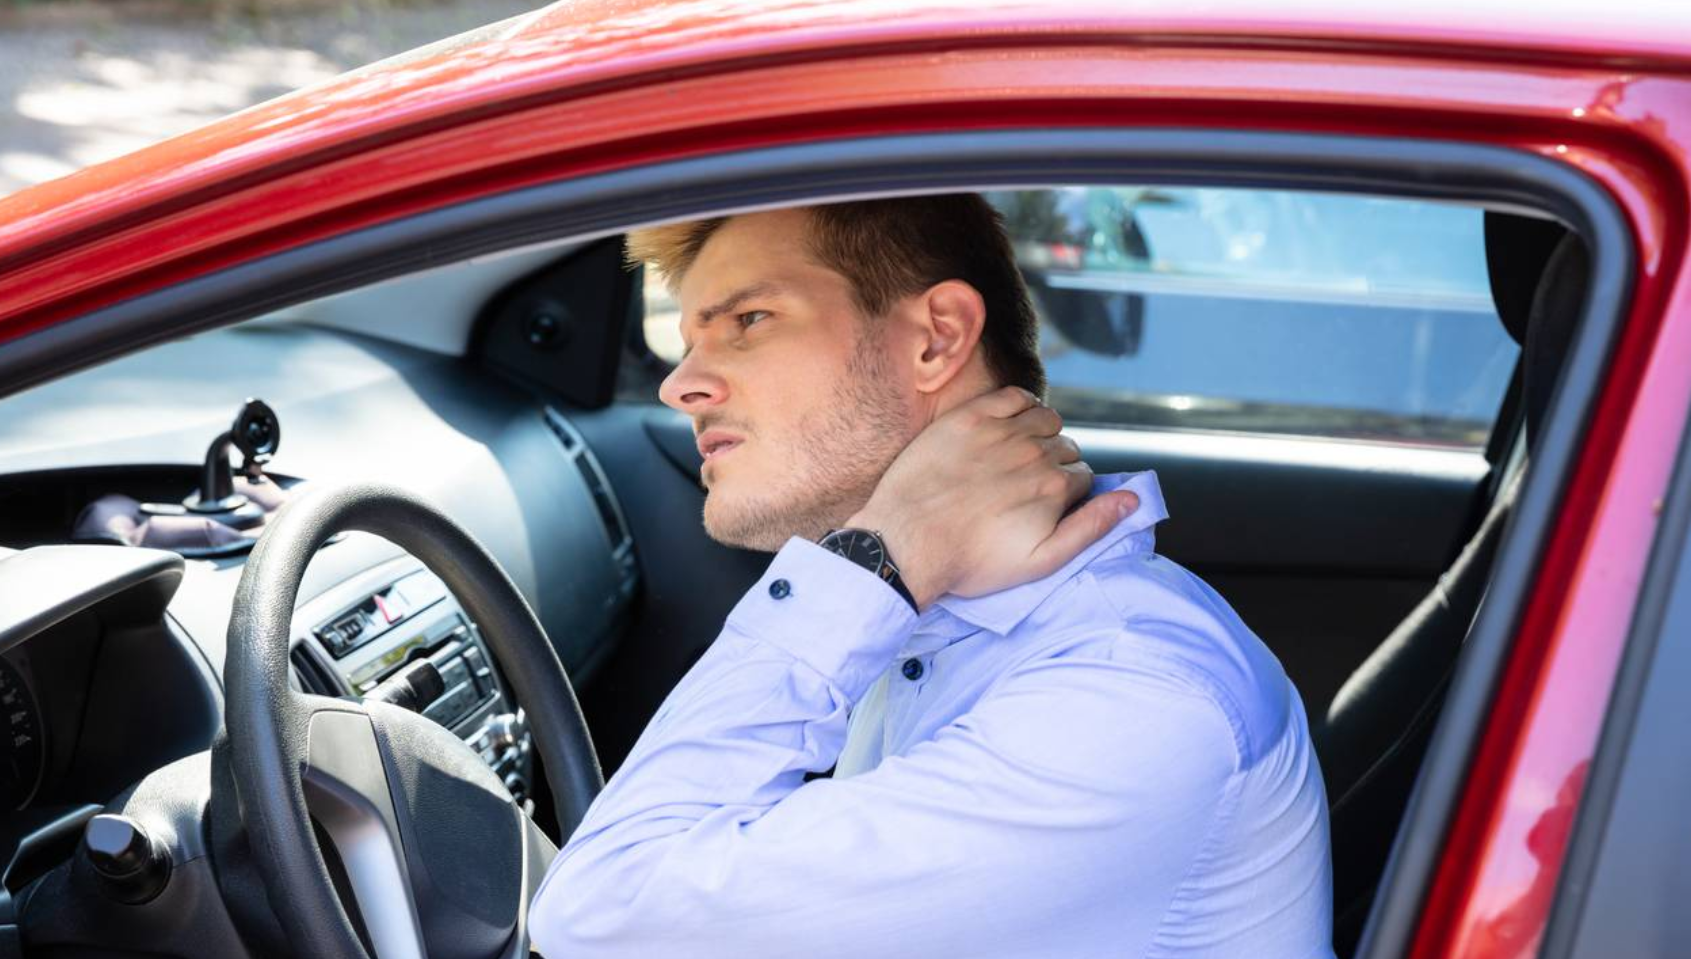 A man suffering from neck pain after a car accident